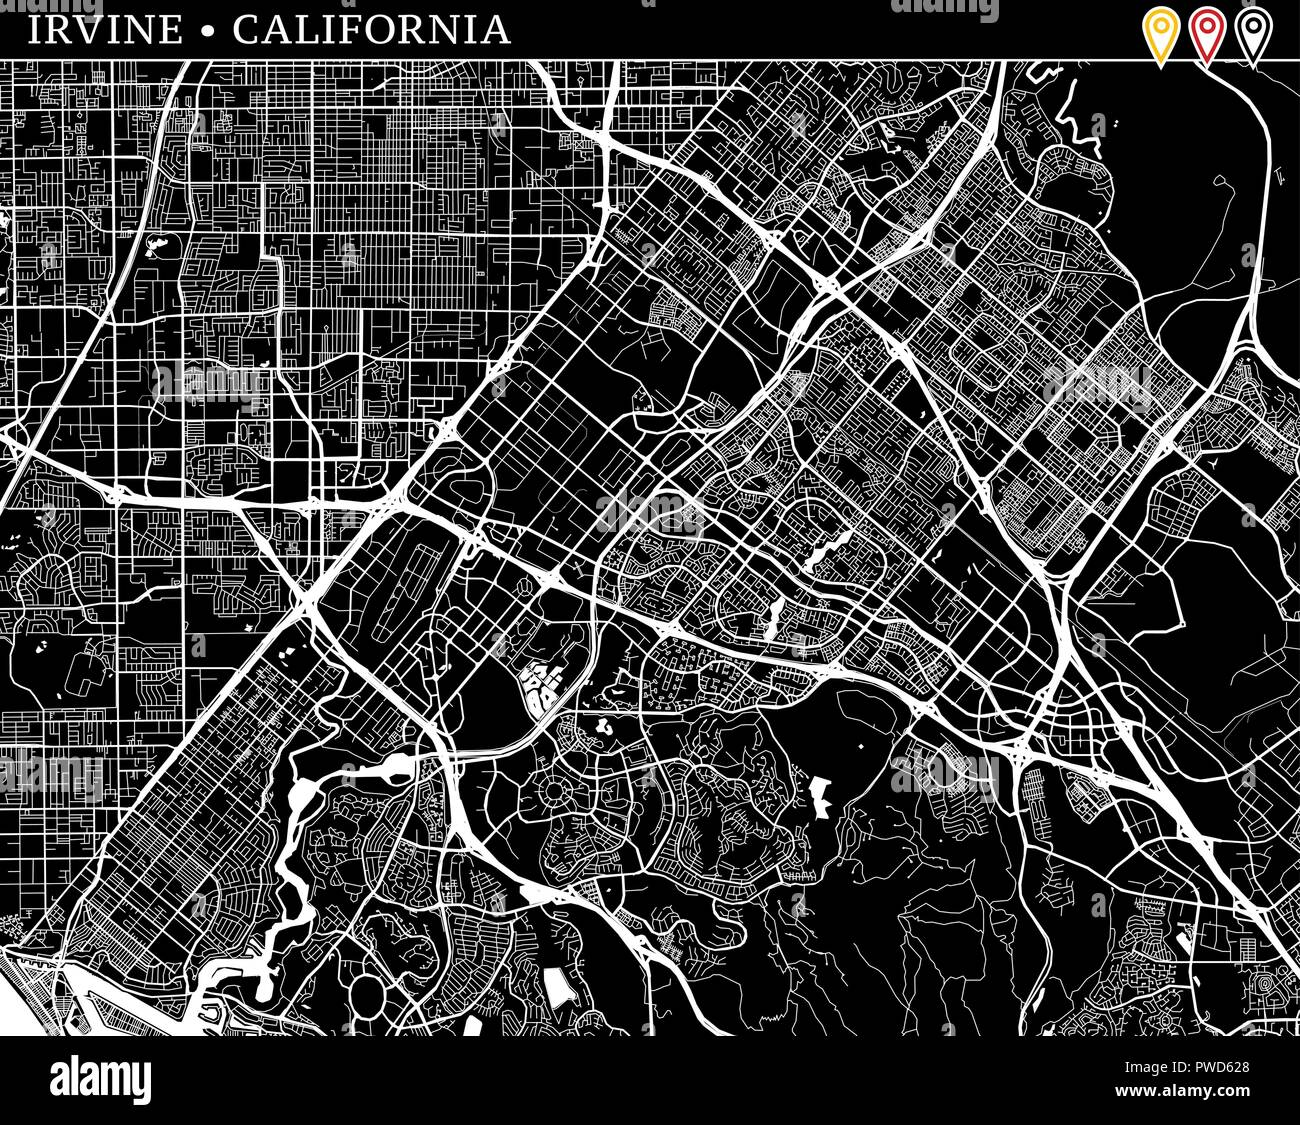 Where Is Irvine California On California Map.Simple Map Of Irvine California Usa Black And White Version For